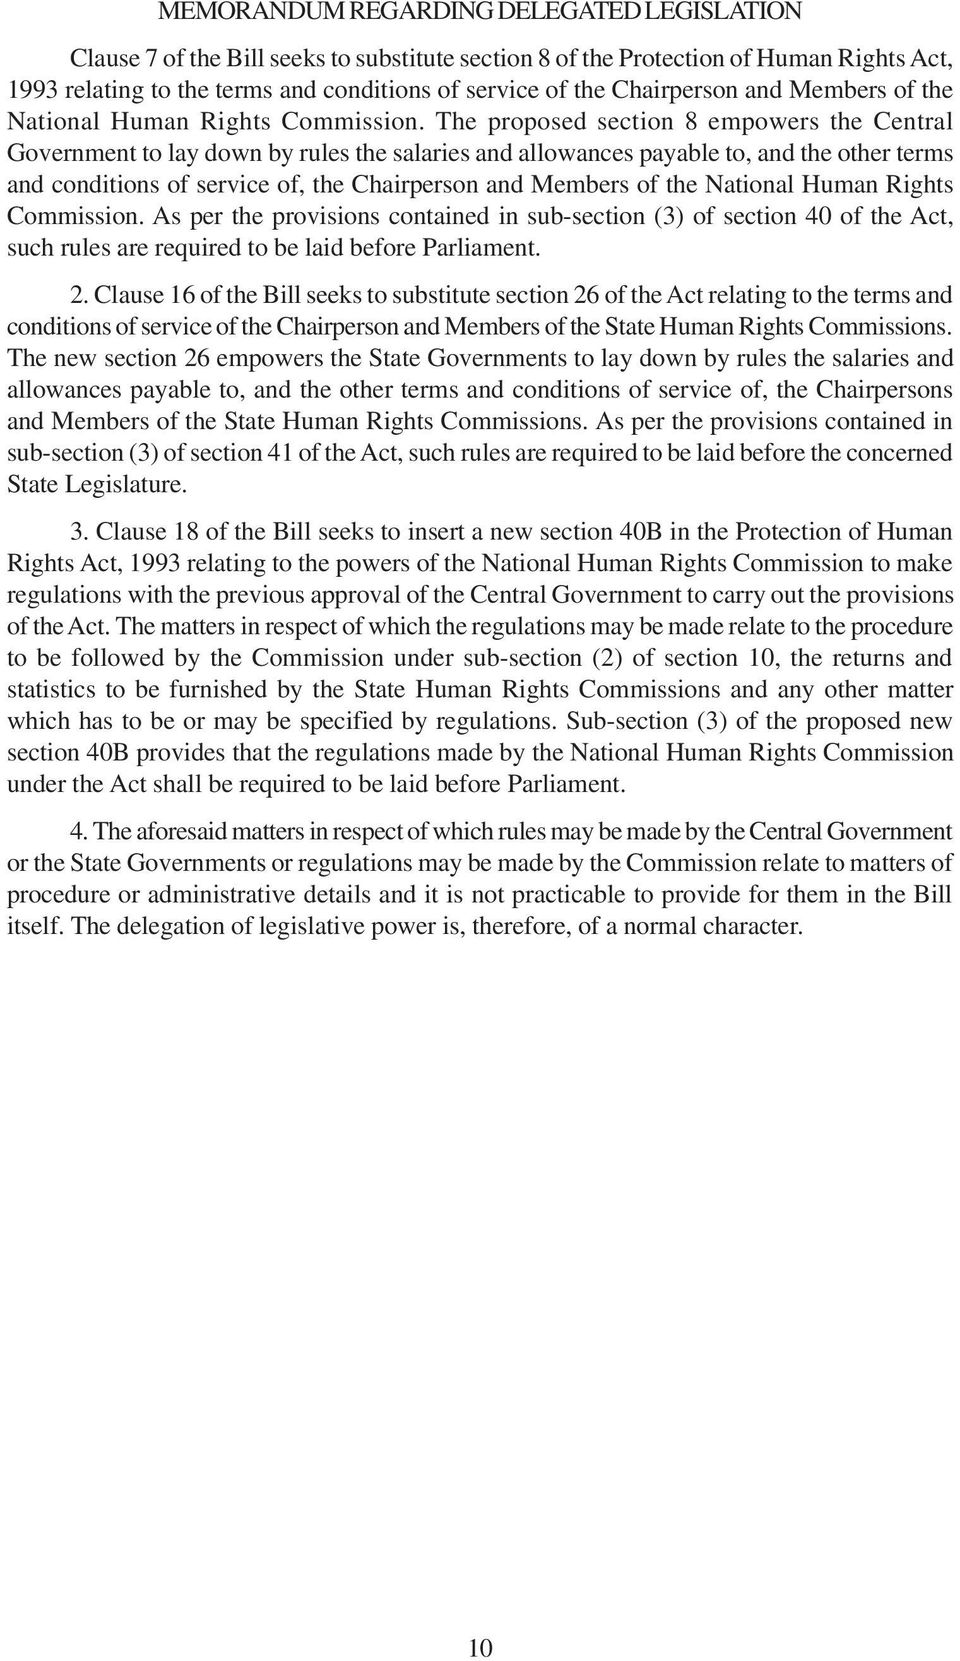 conditions of service of, the Chairperson and Members of the National Human Rights As per the provisions contained in sub-section (3) of section 40 of the Act, such rules are required to be laid